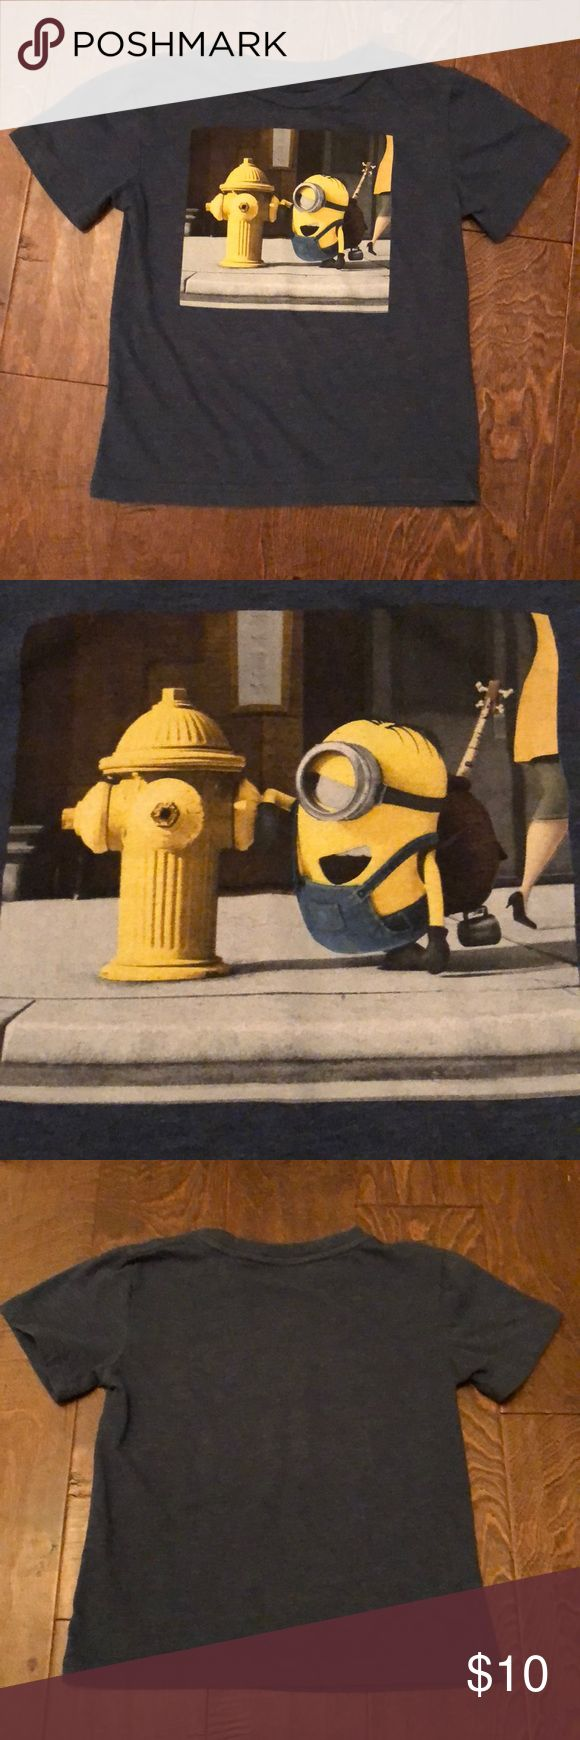 """Minions Illumination Entertainment Tee Navy blue shirt sleeve """"Minions"""" tee.  60% cotton, 40% polyester.  Excellent condition, 🚭 smoke free, 🐶 friendly home. Minions Illumination Entertainment Shirts & Tops Tees - Short Sleeve"""